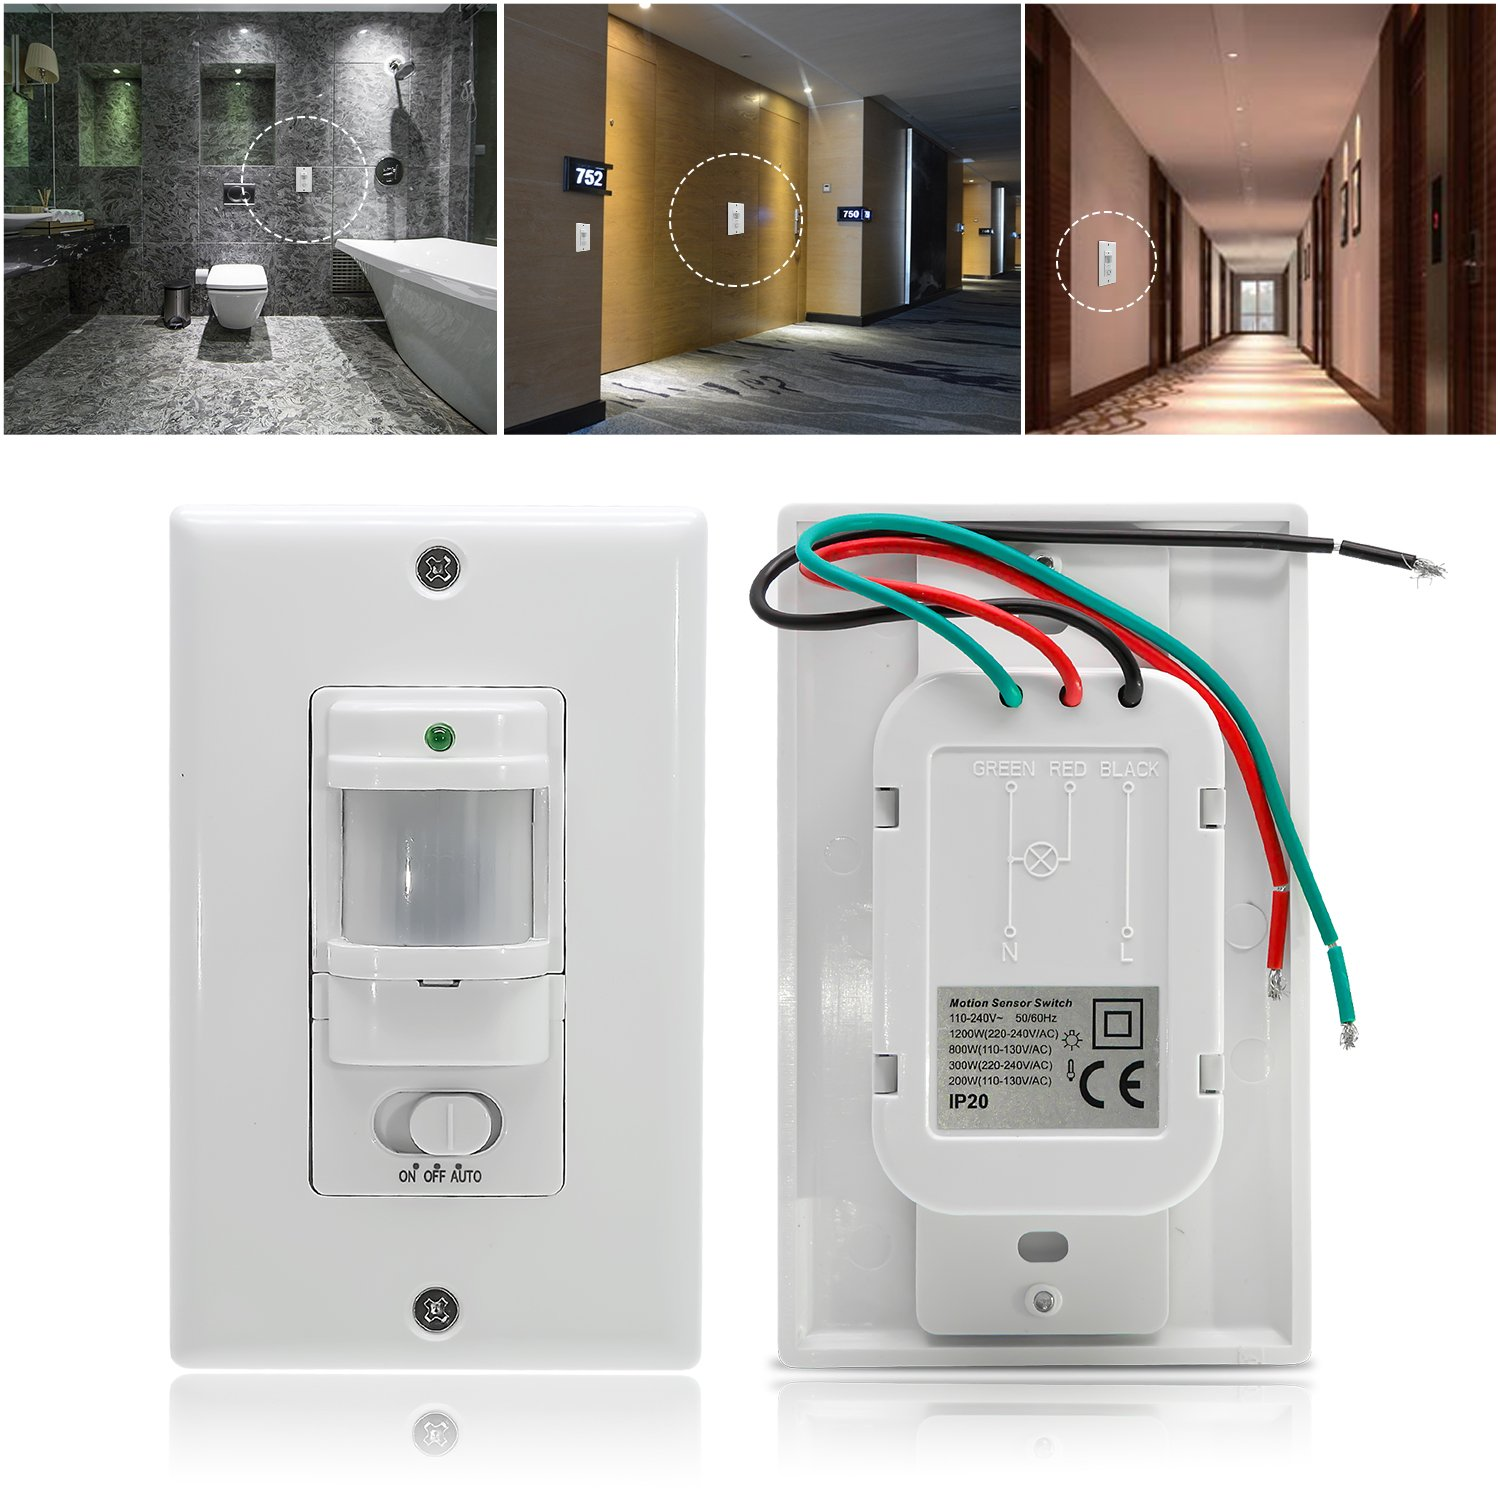 Sensky Bs033c Motion Sensor Light Switch Occupancy Case 220 Wiring Diagram For Corridor And Staircase Neutral Wire Required Industrial Scientific